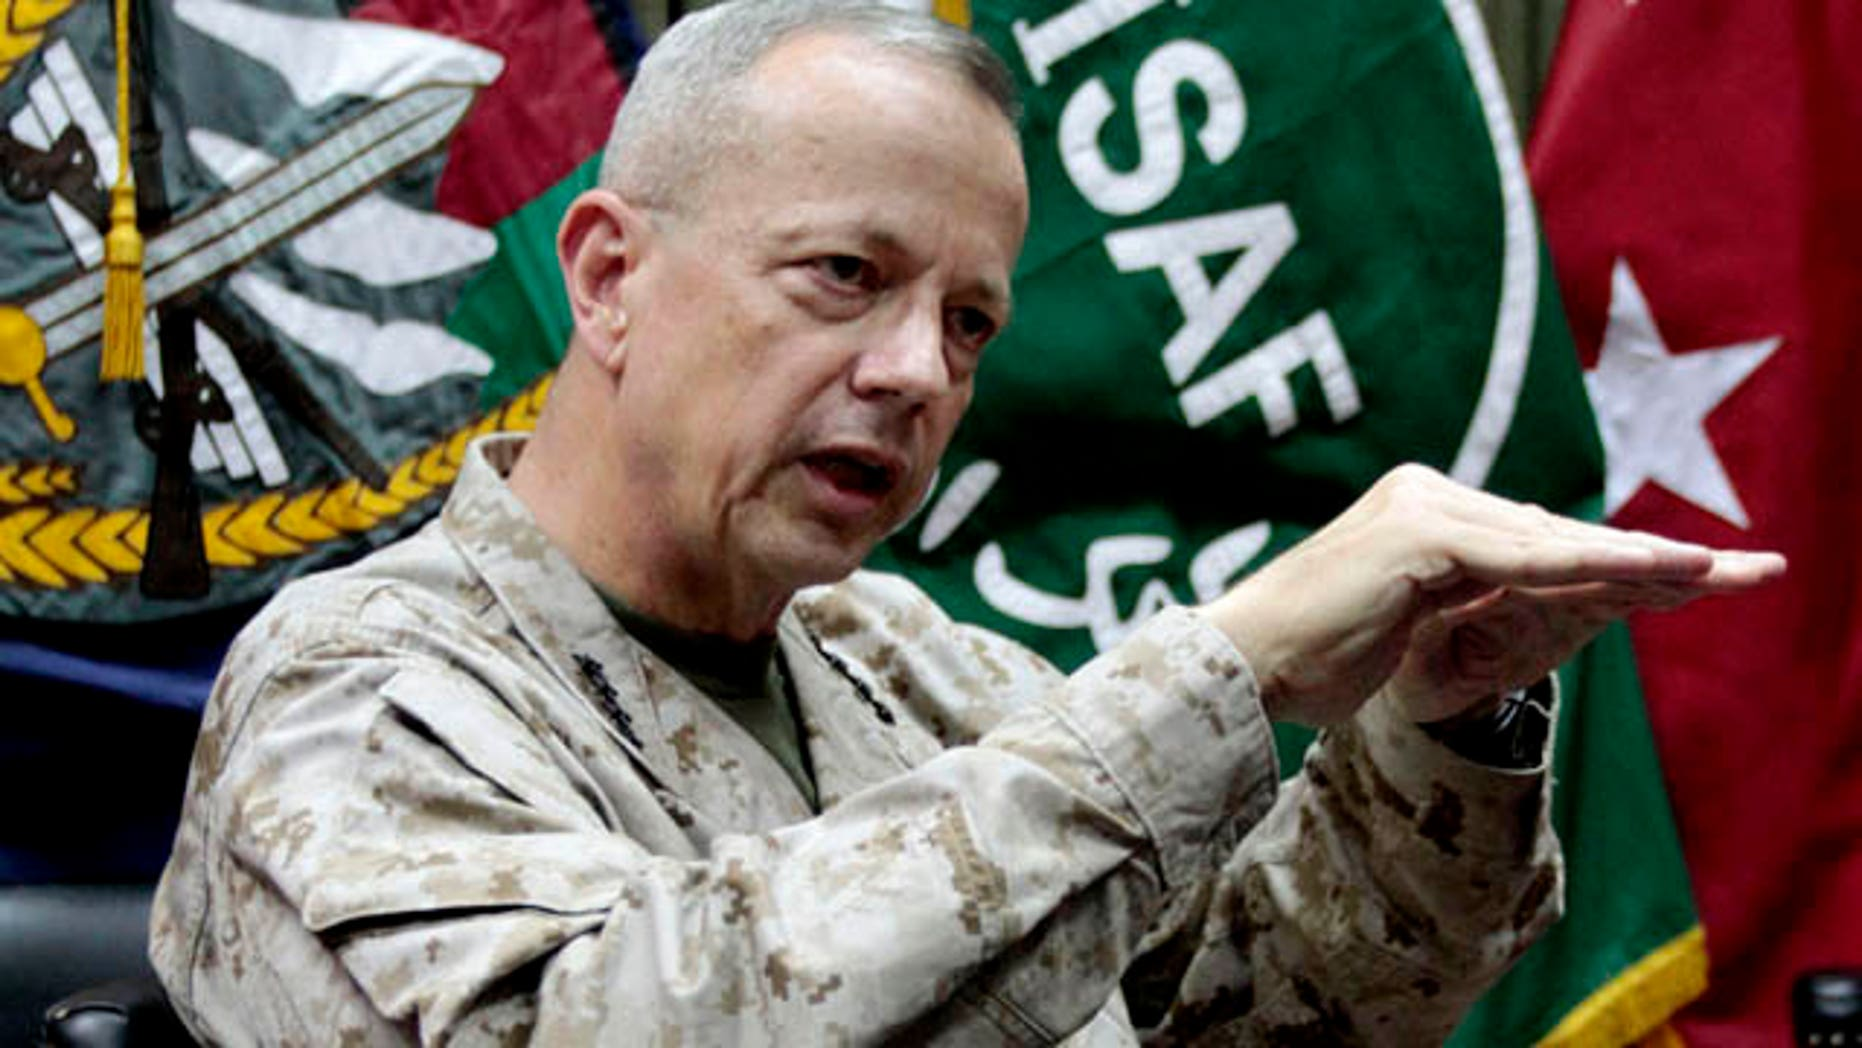 FILE - In this July 22, 2012 file photo, Gen. John Allen gestures during an interview with the Associated Press in Kabul, Afghanistan. Allen will serve as coordinator for the broad international effort to battle the Islamic State group, as nations begin to determine what part each will play. (AP Photo/Musadeq Sadeq, File)